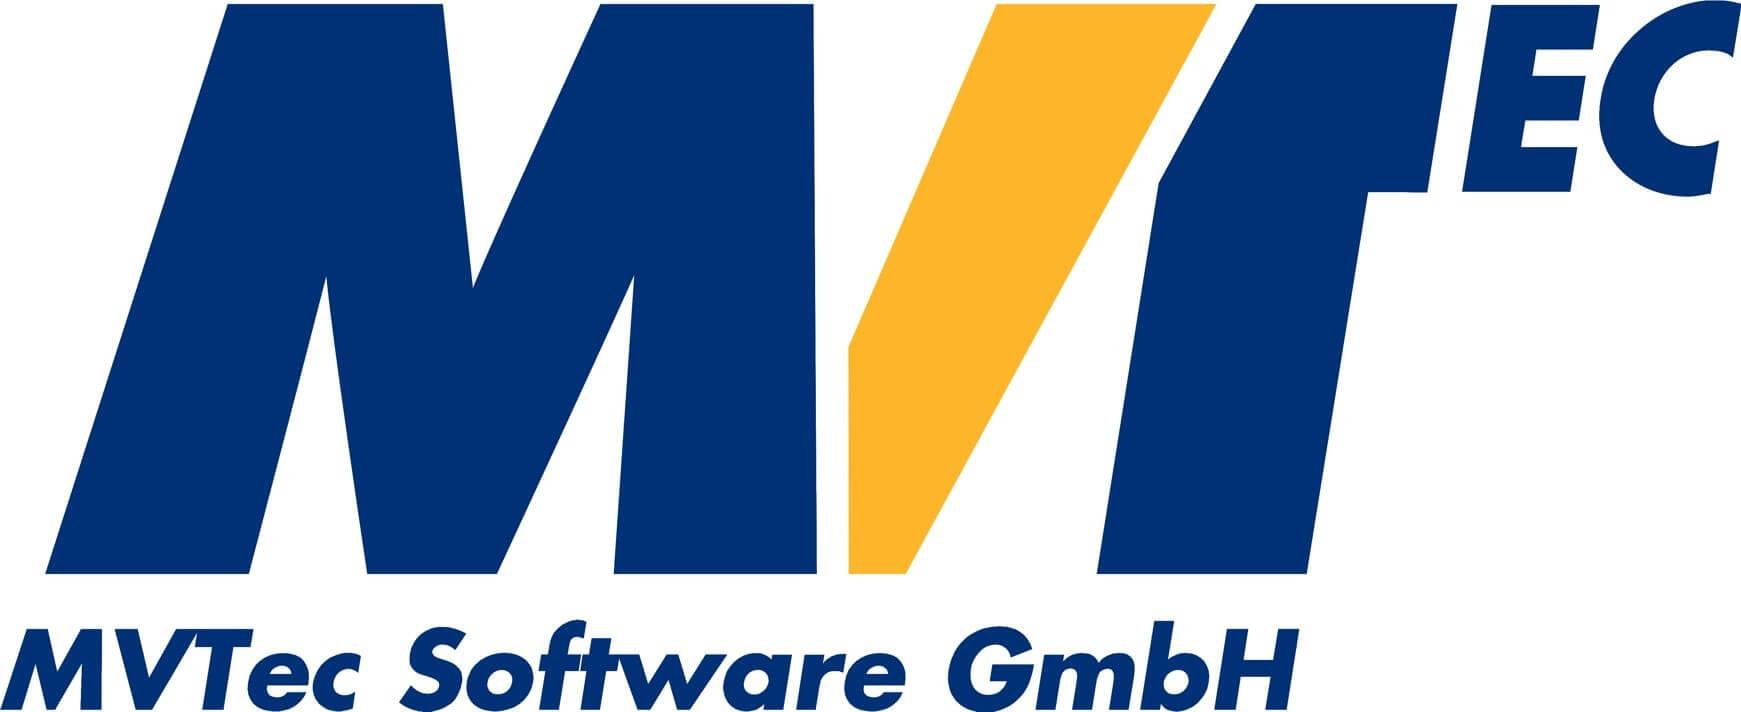 MVTec Software GmbH